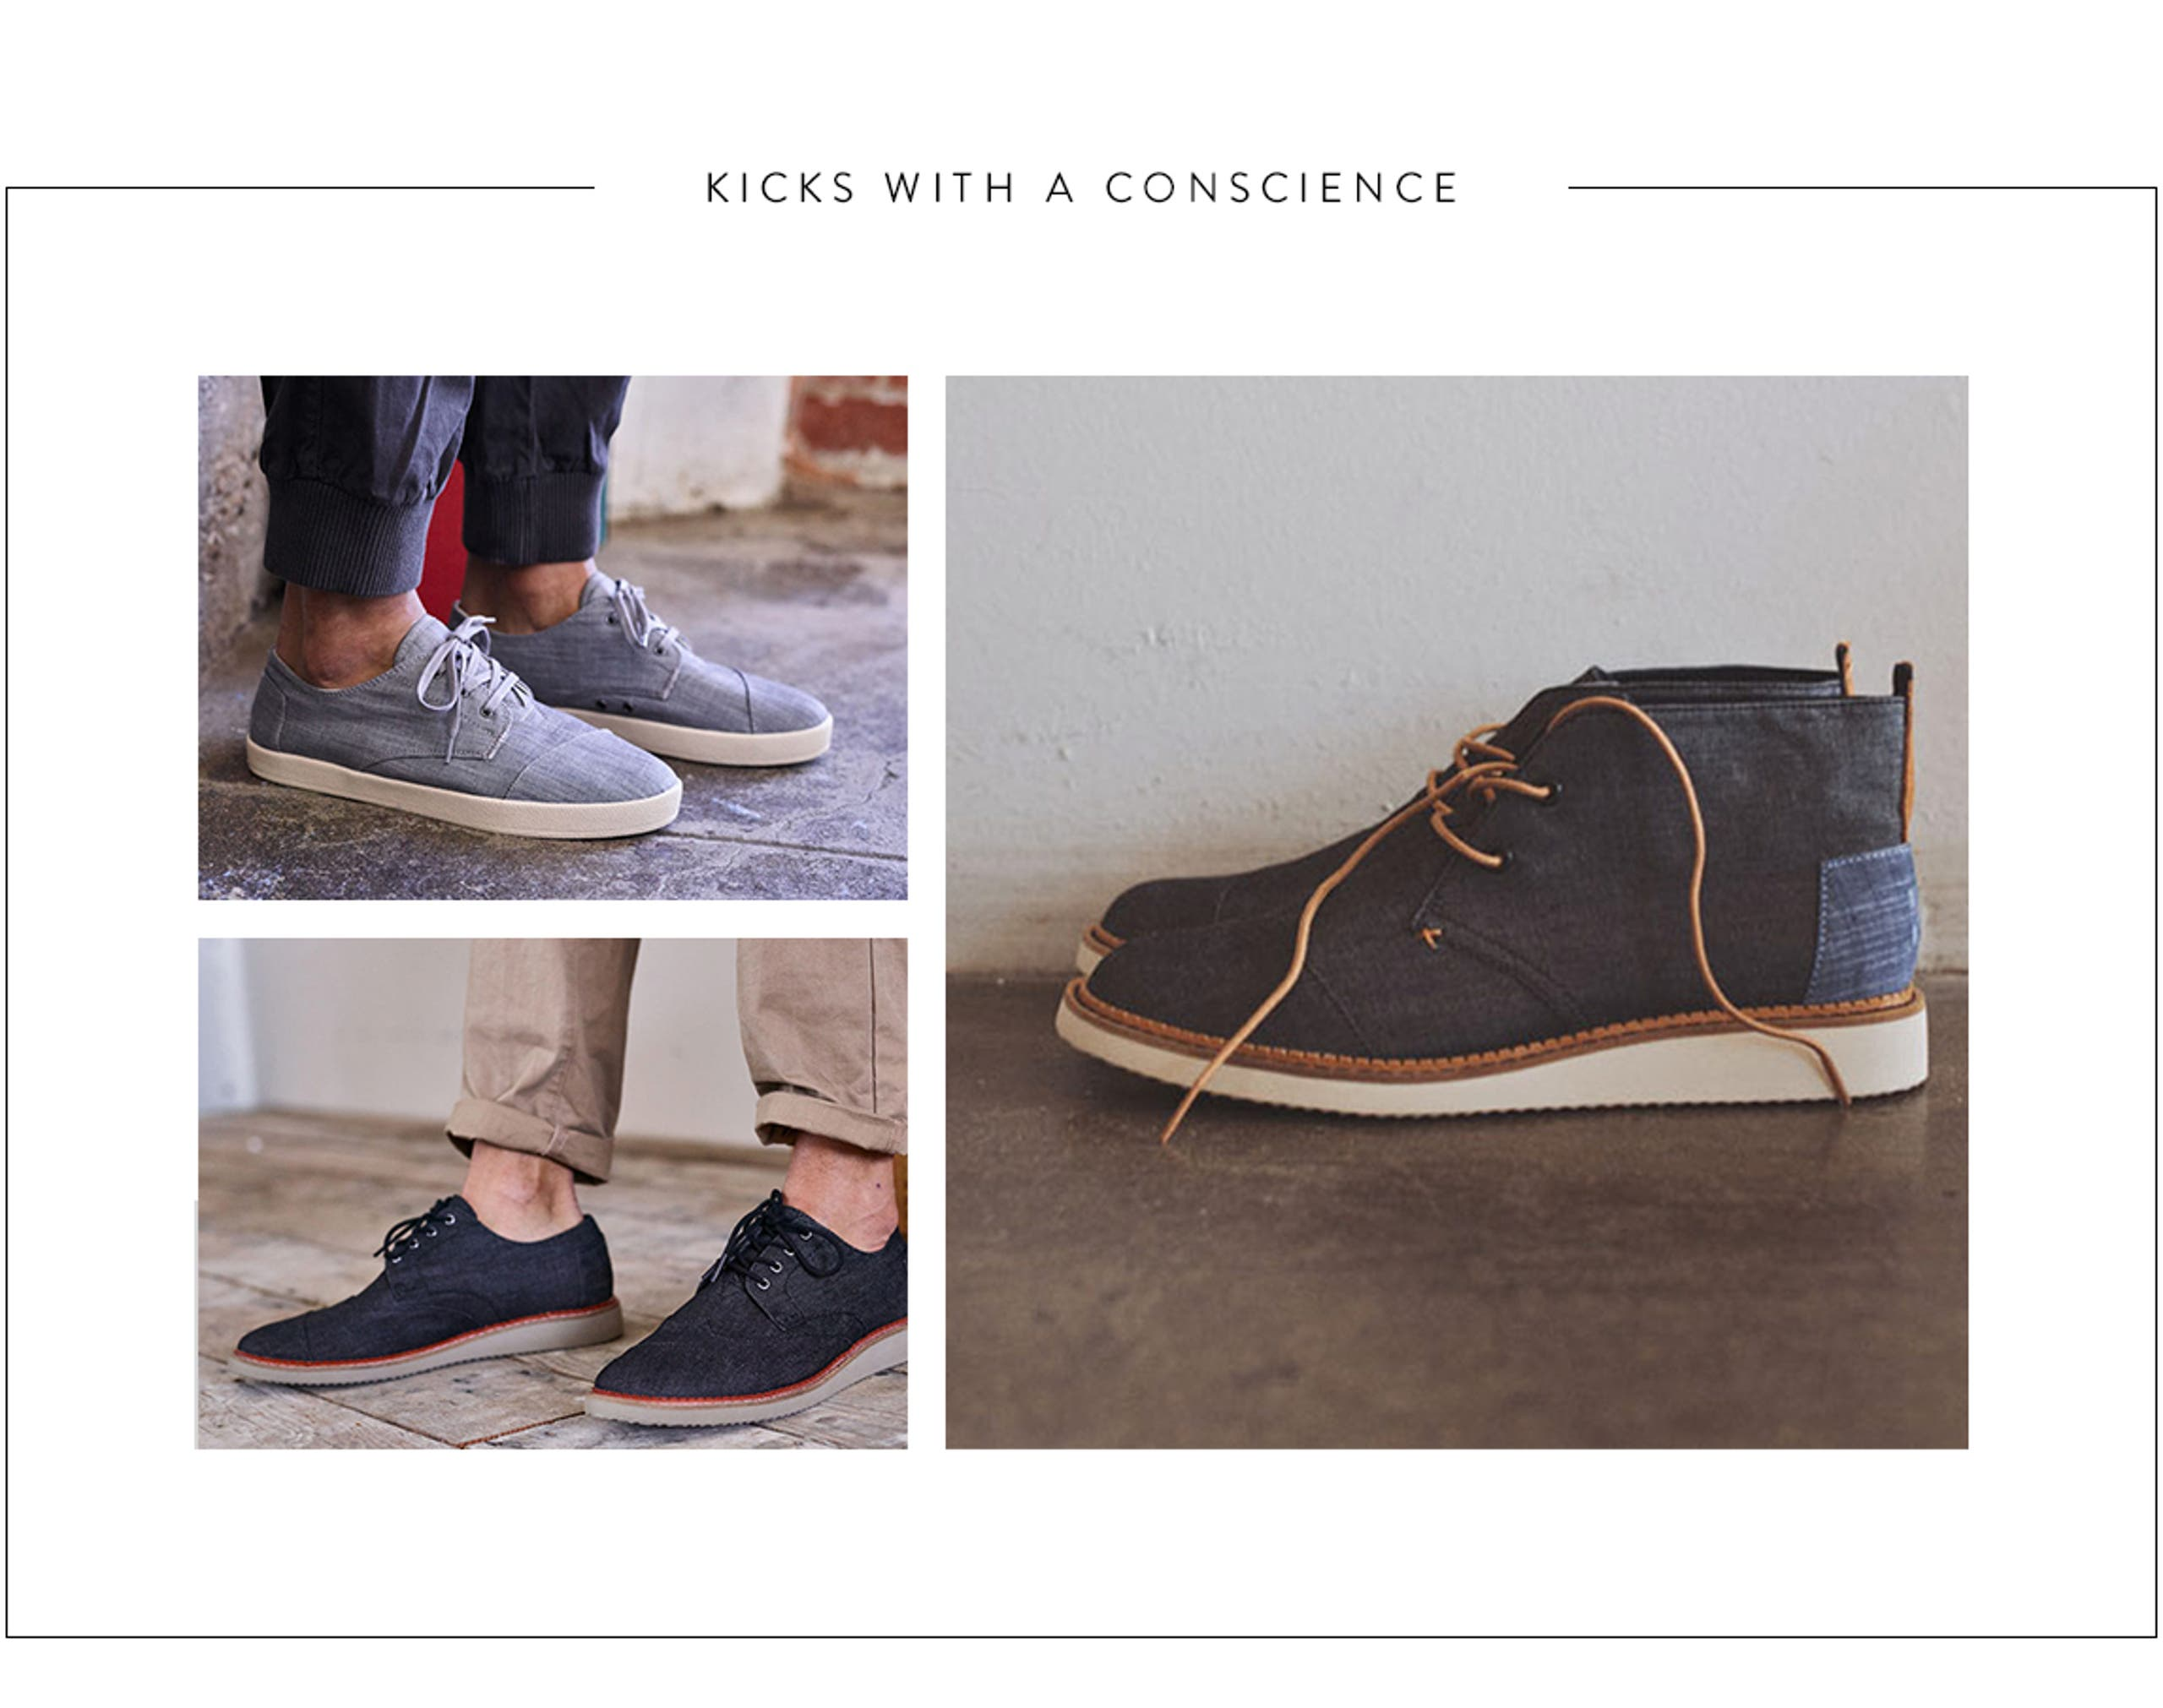 Kicks with a conscience. TOMS men's shoes.